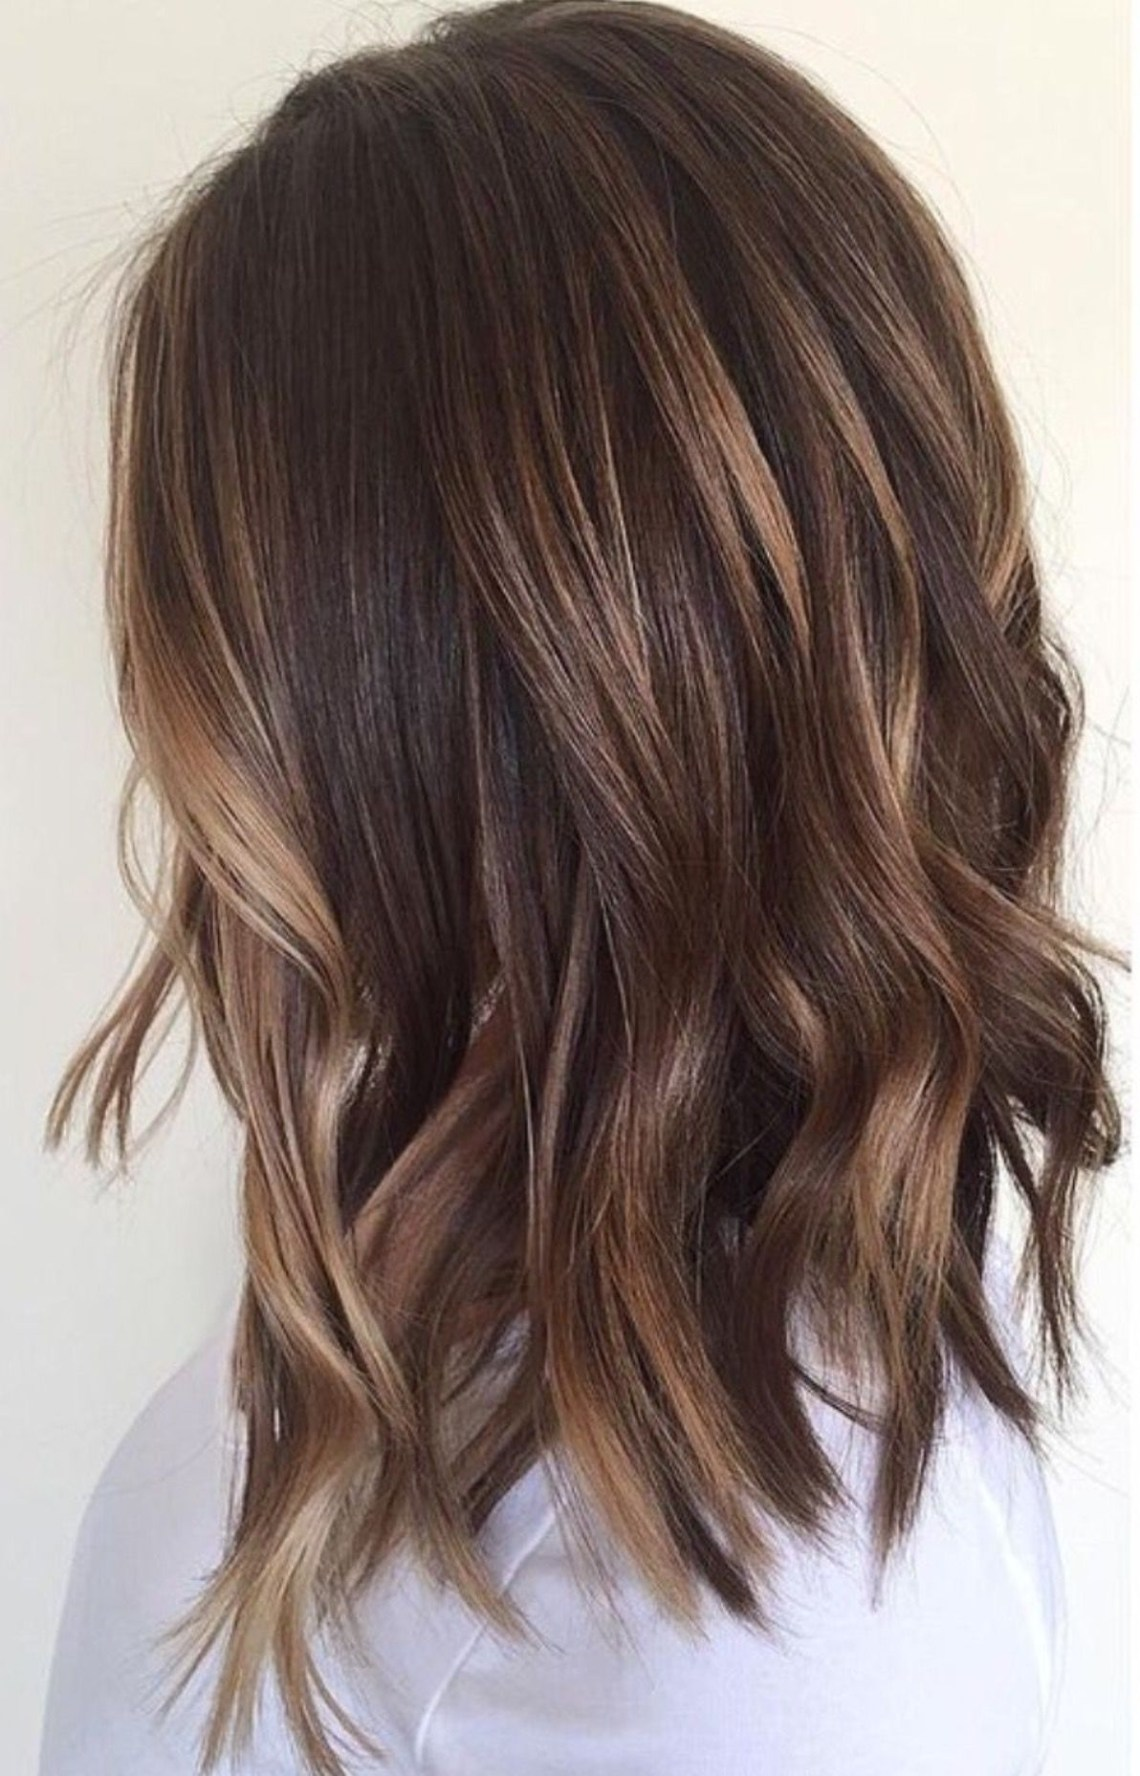 Pin On Hair (Beauty) 30+ Stunning Hairstyles For Medium Hair With Highlights